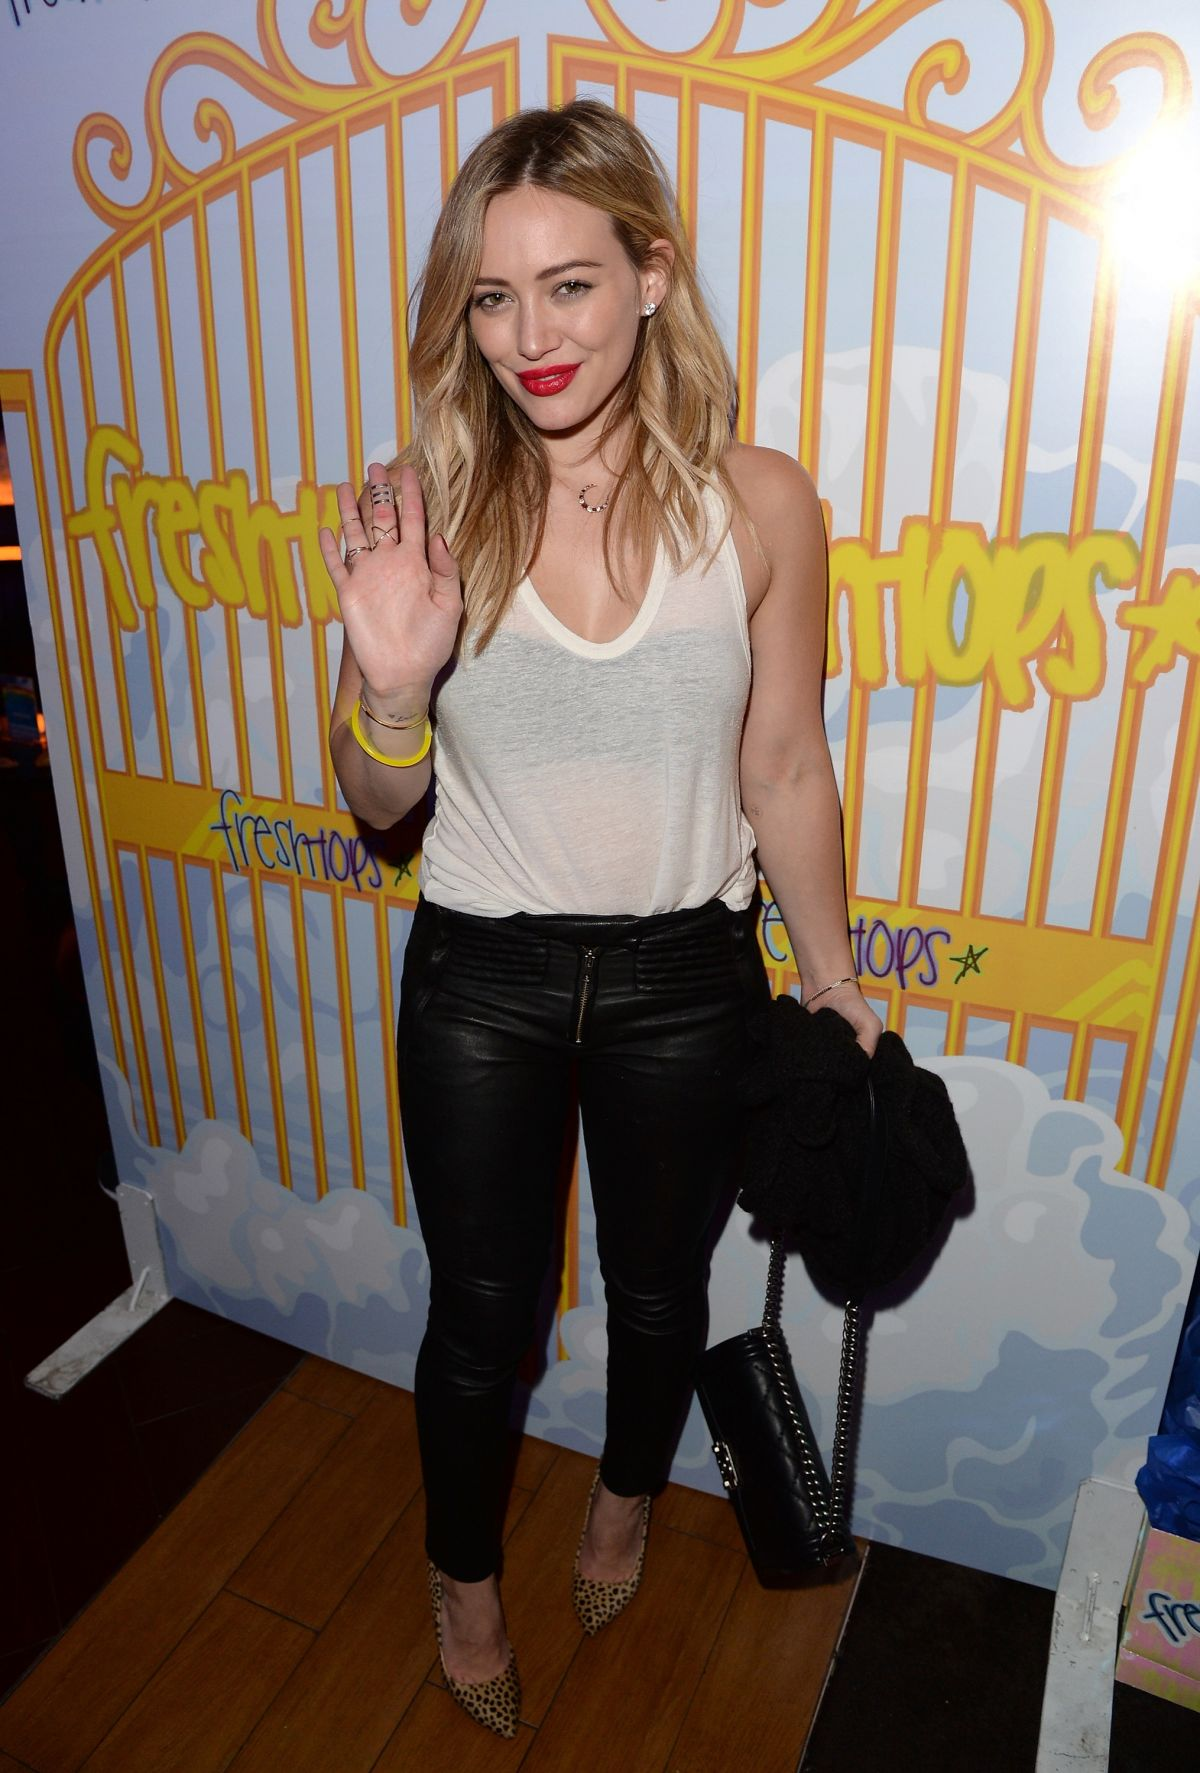 Hilary Duff At Selena Gomez Concert Viewing Party In LA